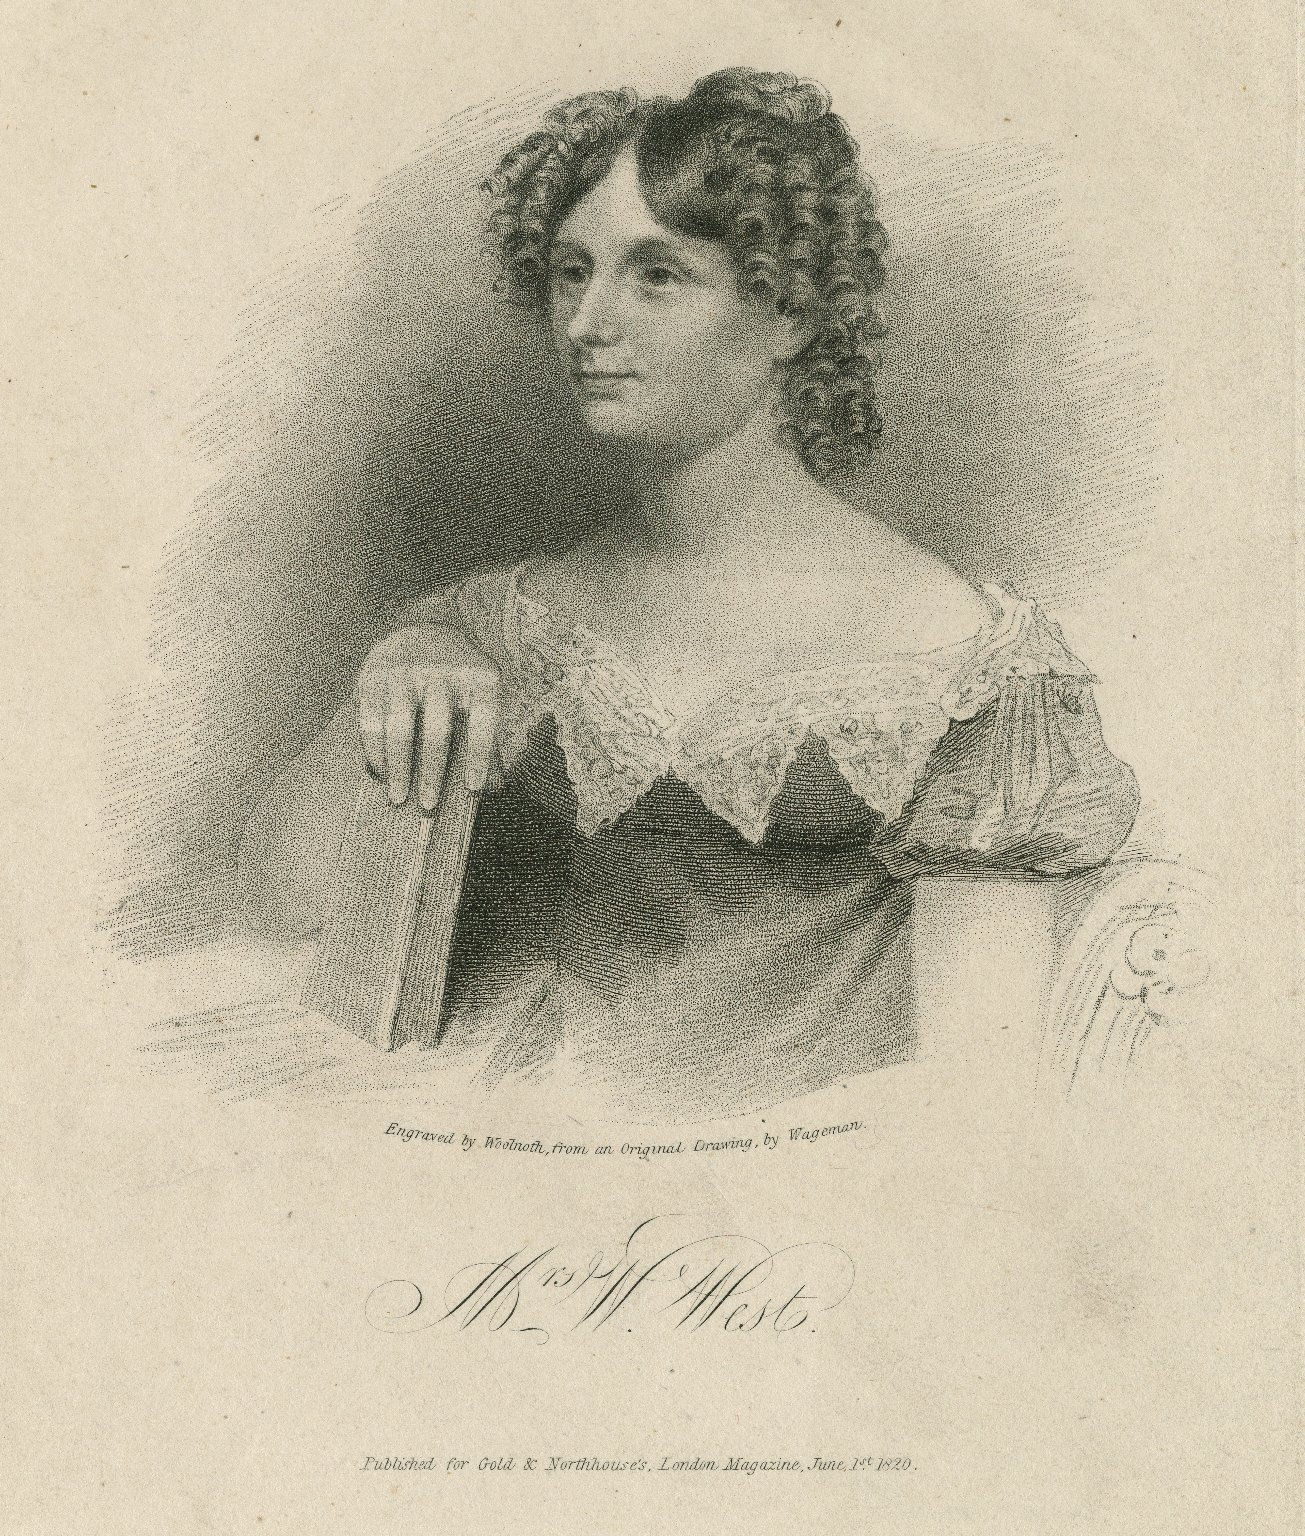 Mrs. W. West [graphic] / engraved by Woolnoth from an original drawing by Wageman.